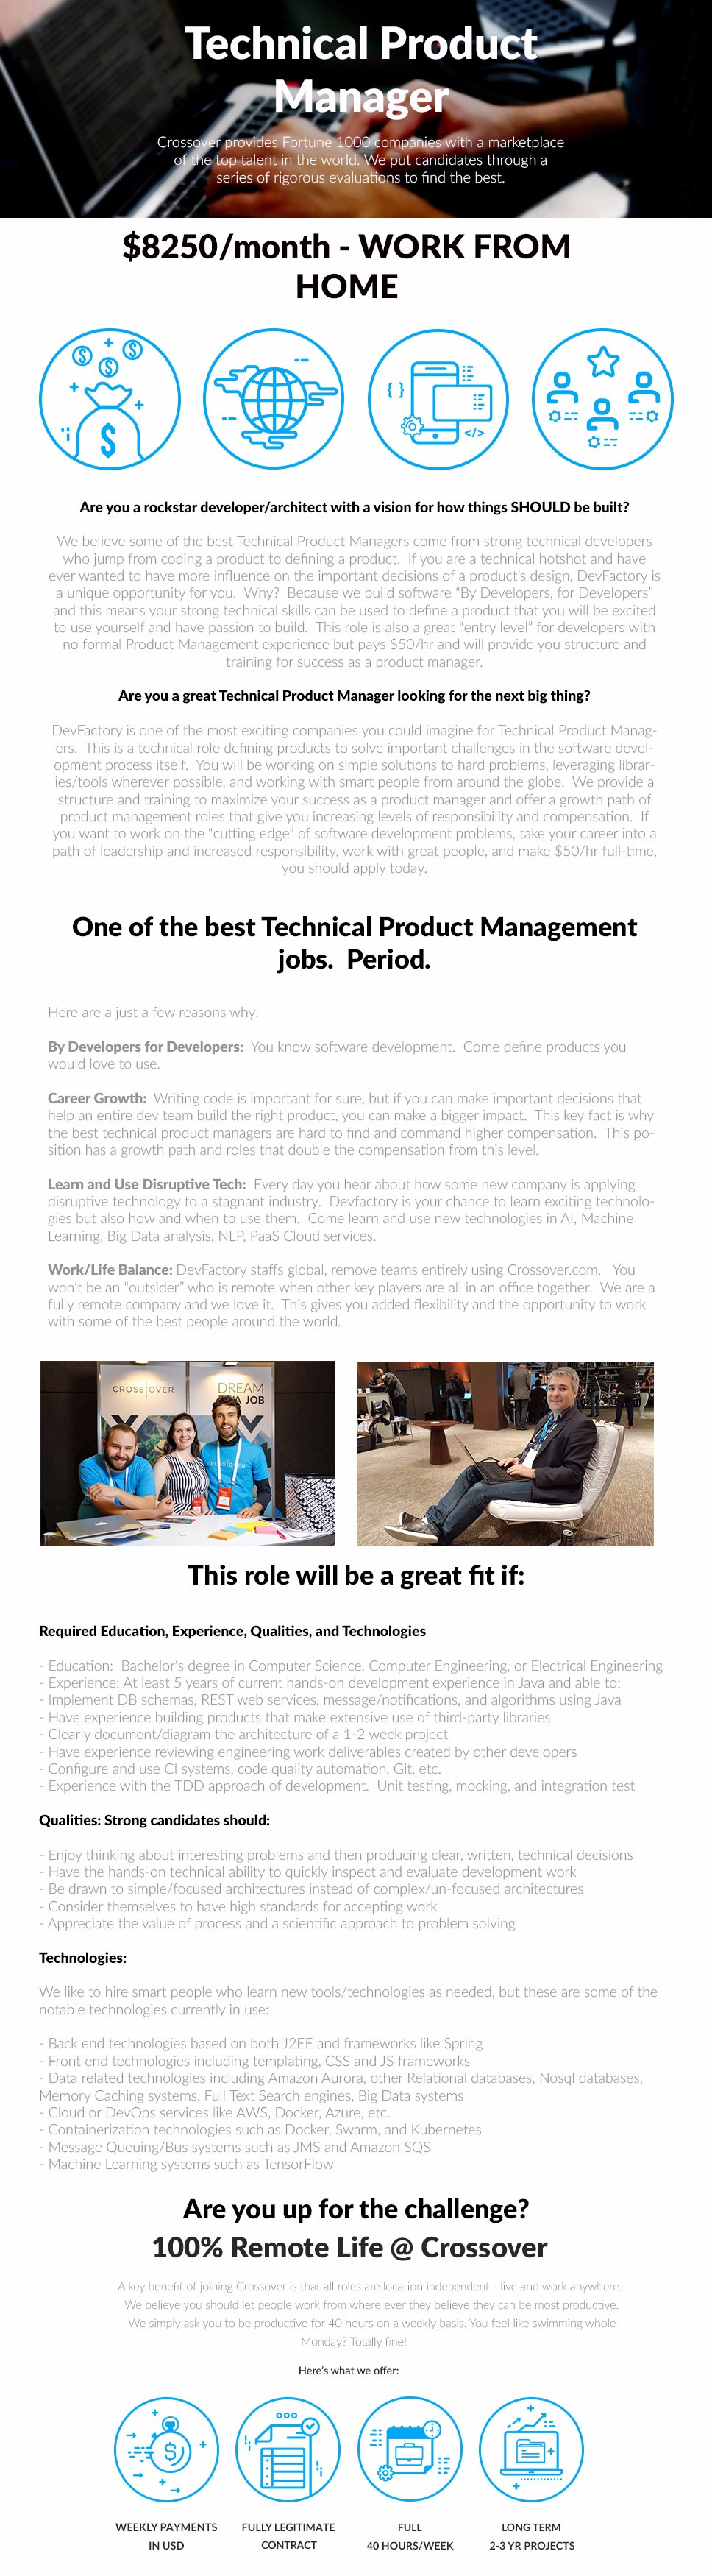 2420-Technical Product Manager